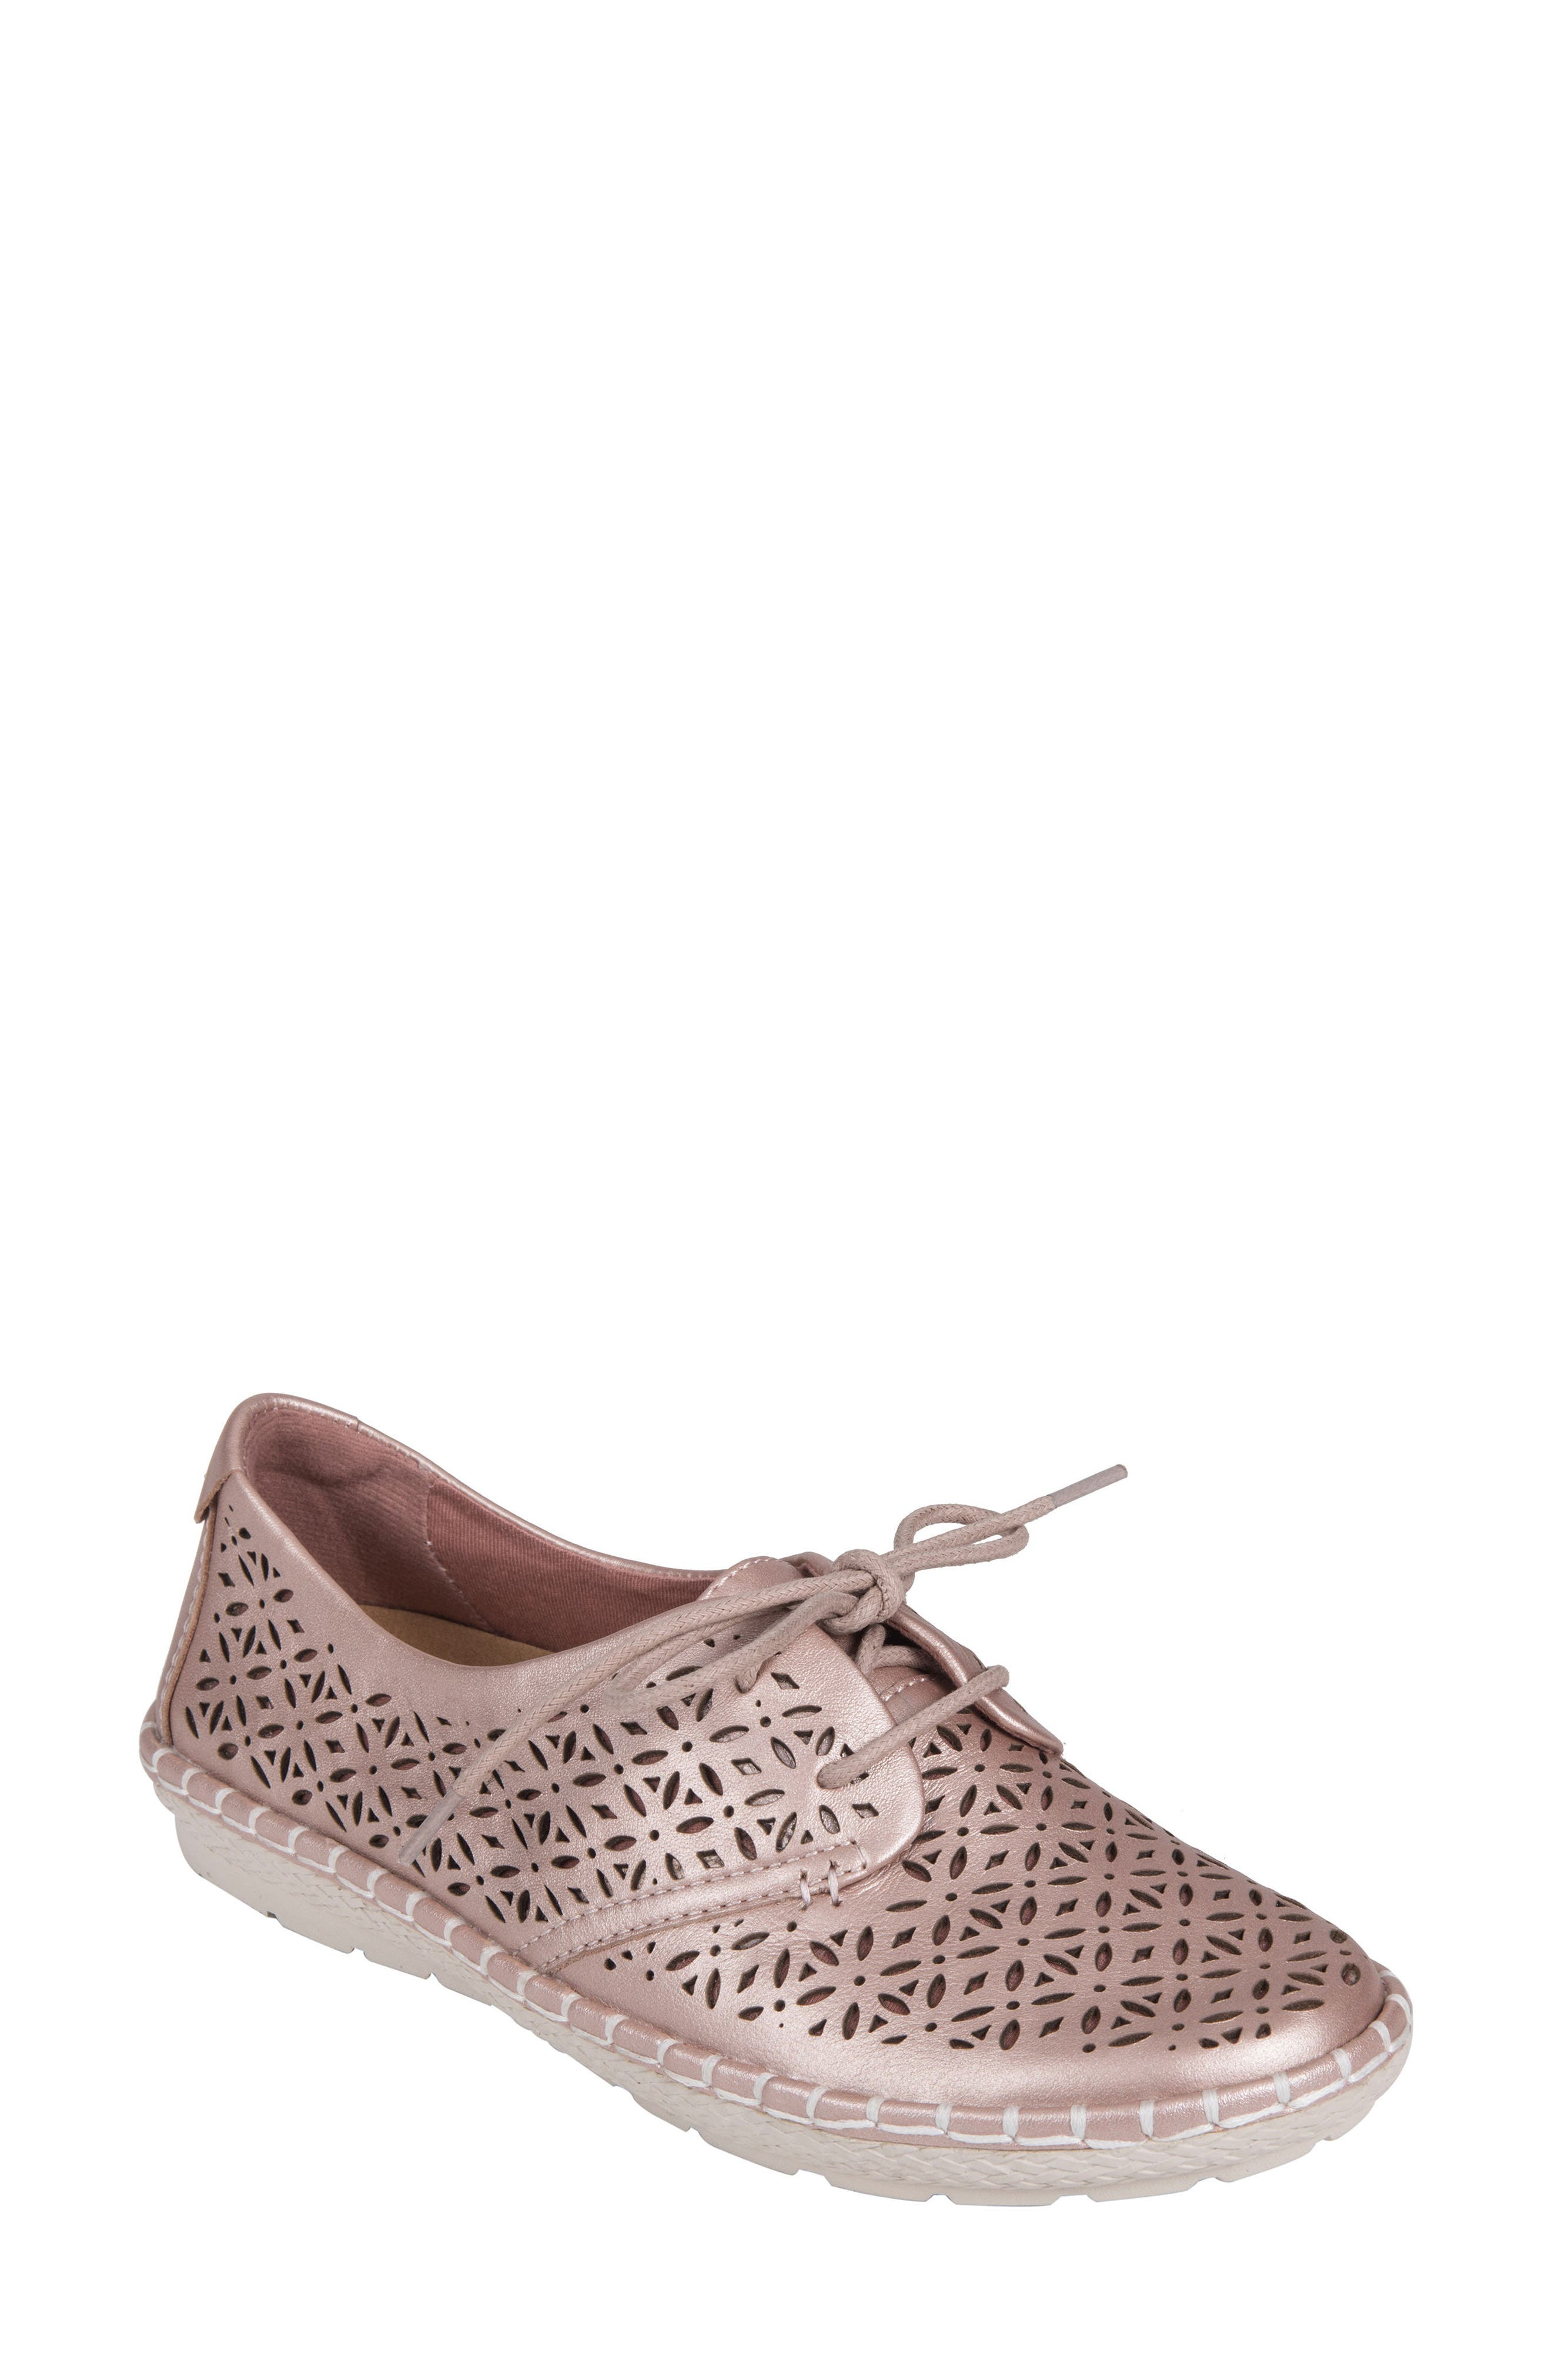 Pax Sneaker,                         Main,                         color, BLUSH LEATHER